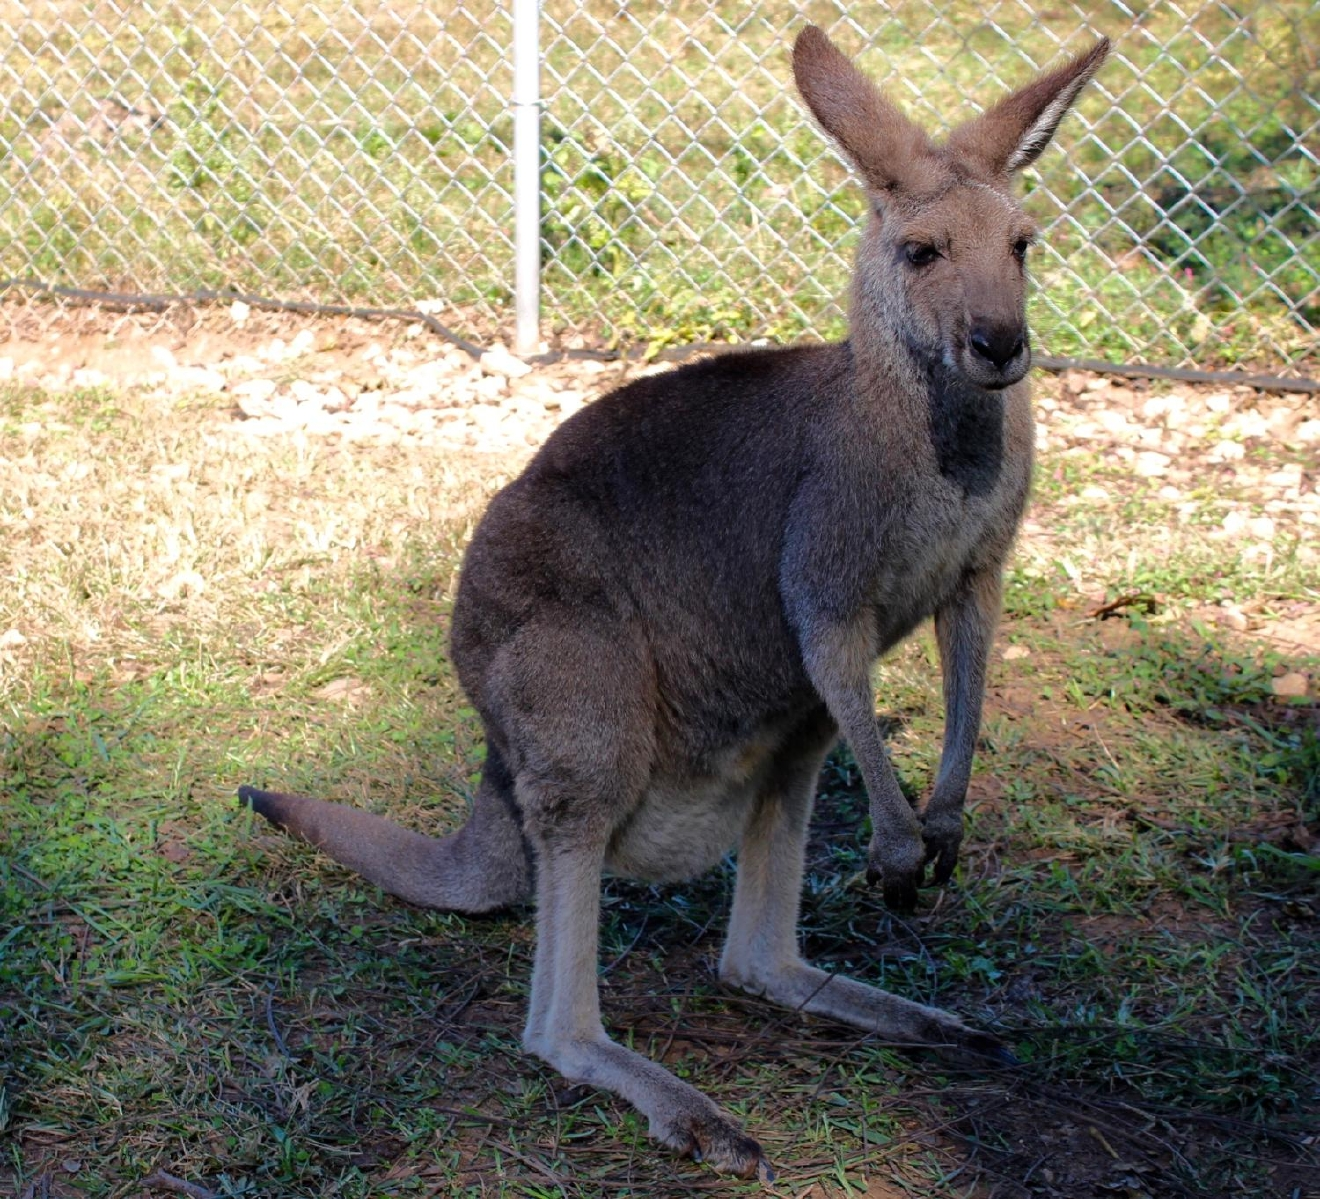 Kentucky Down Under Adventure Zoo is home to Eastern Grey Kangaroos and Red Kangaroos. You'll even have the chance to pet and feed them during your Outback Walkabout! / Image: Rose Brewington